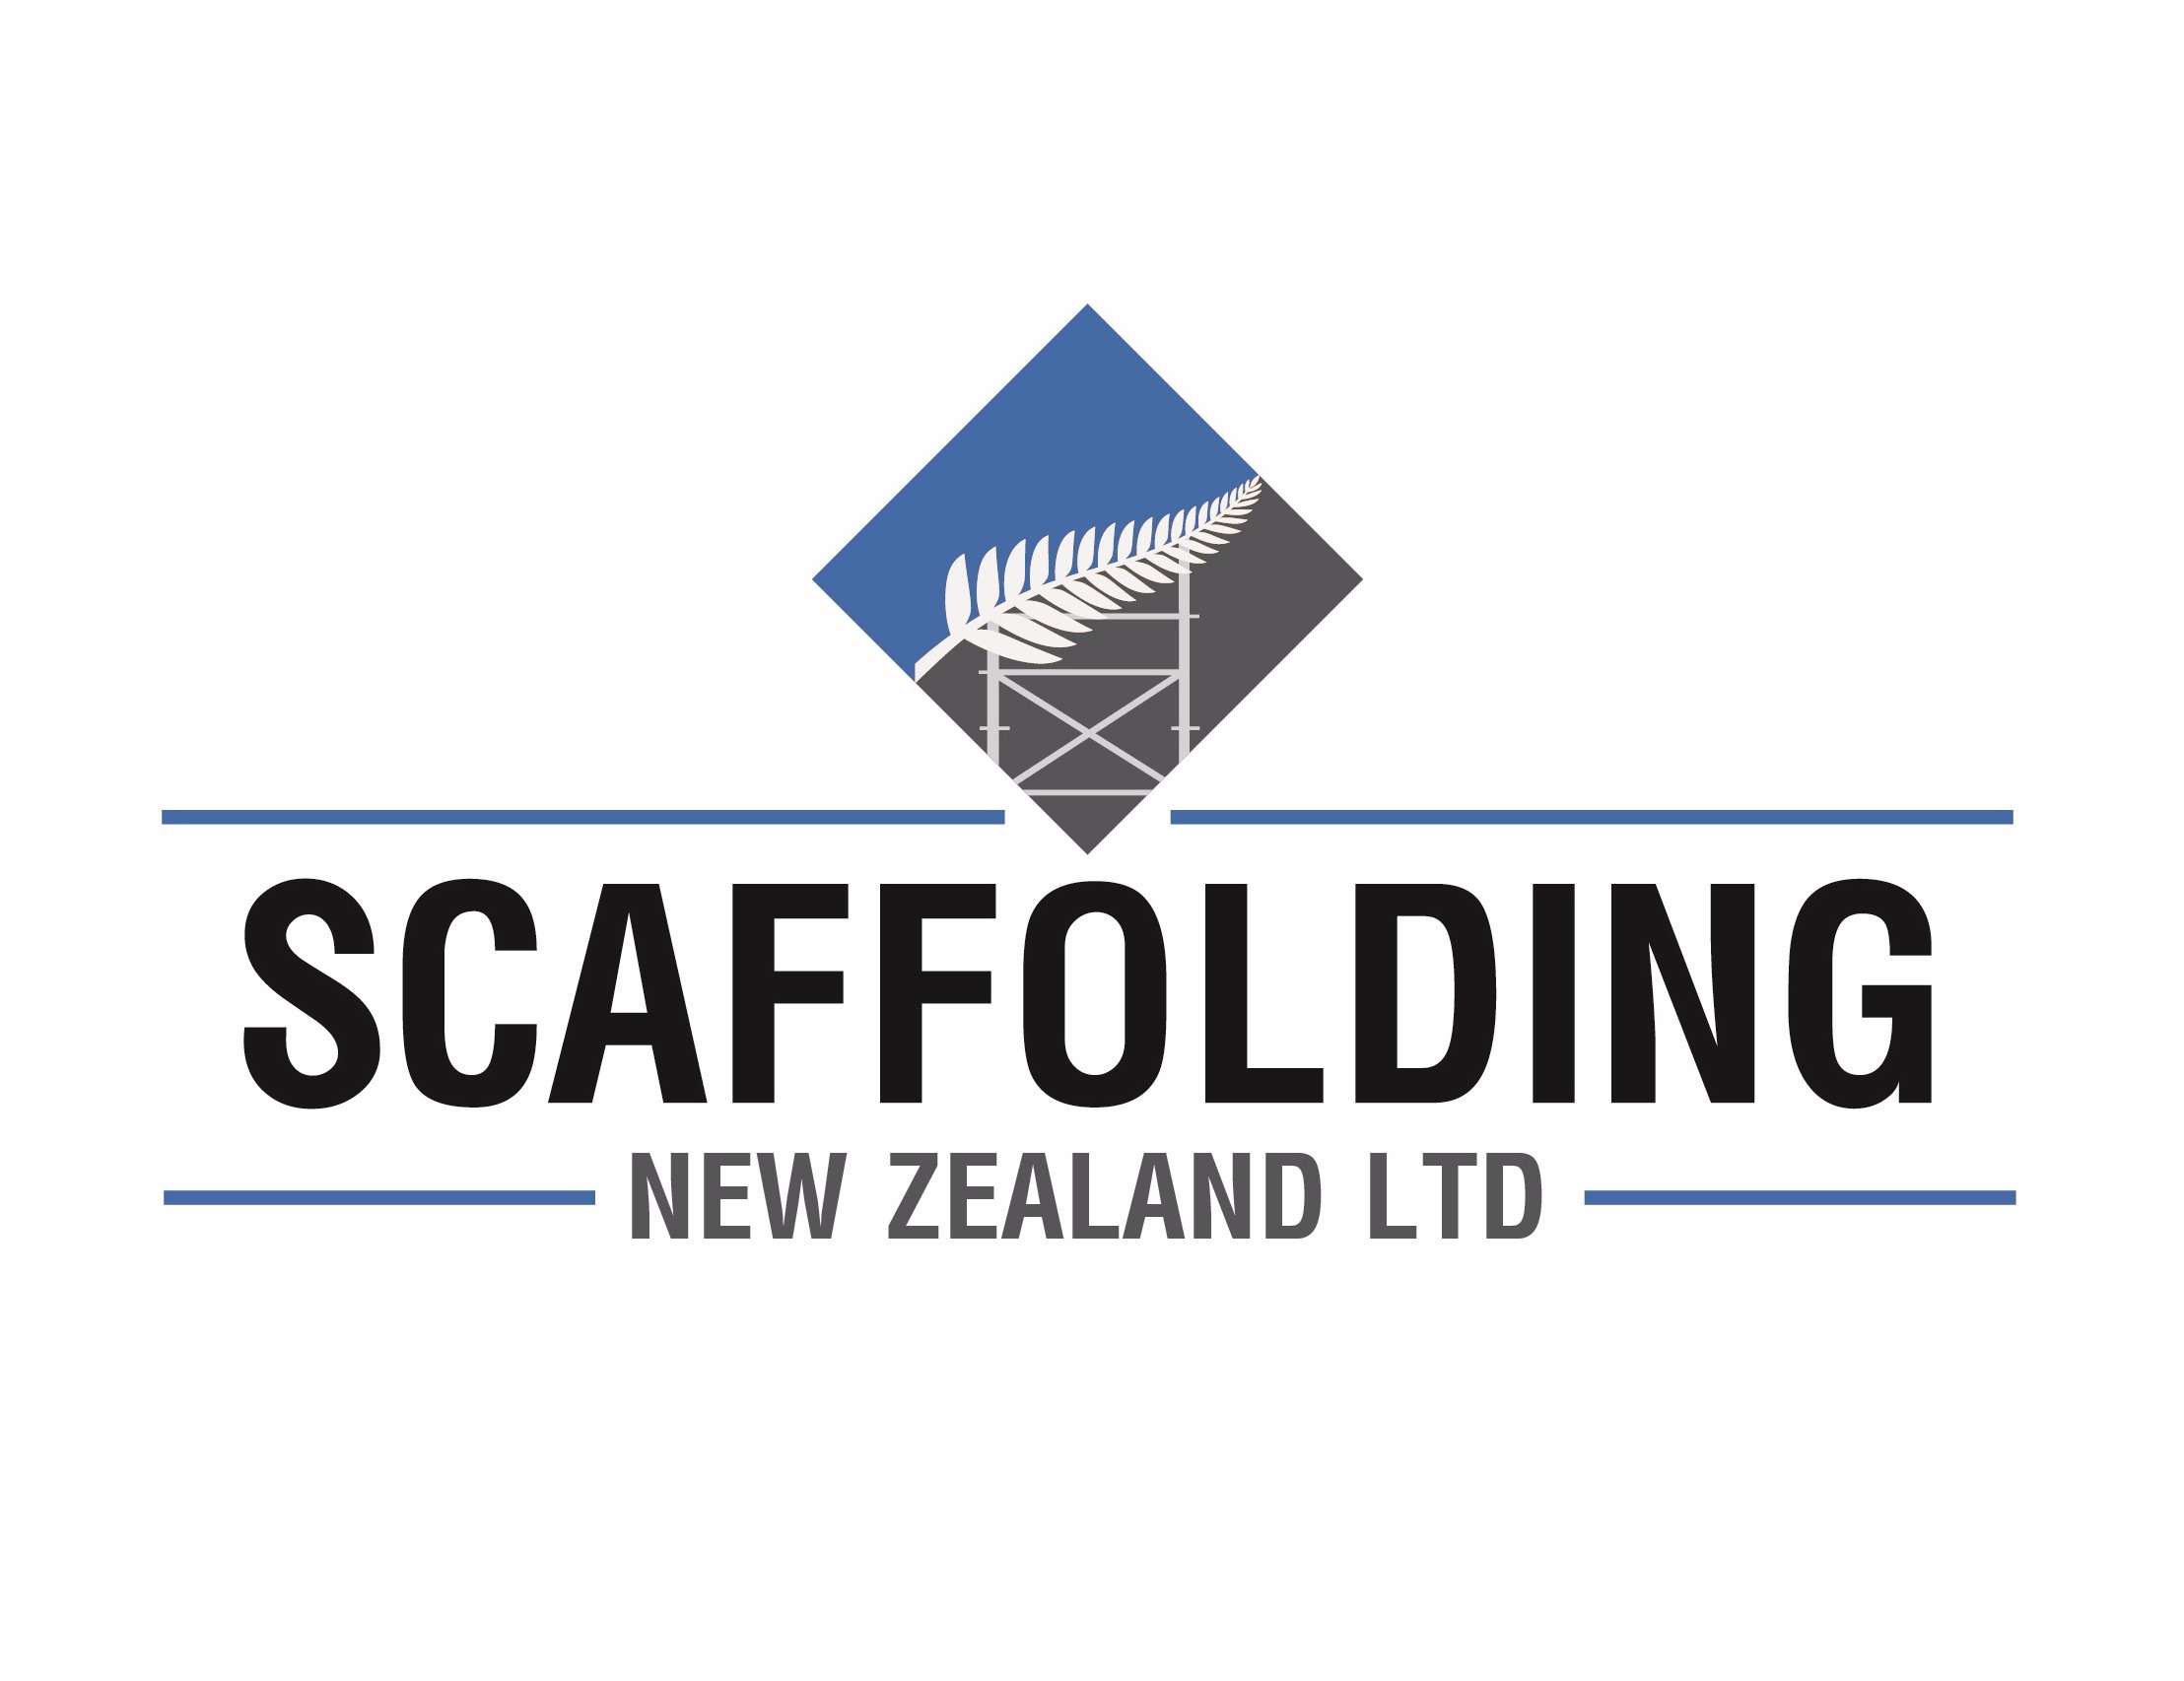 Scaffolding NZ LTD